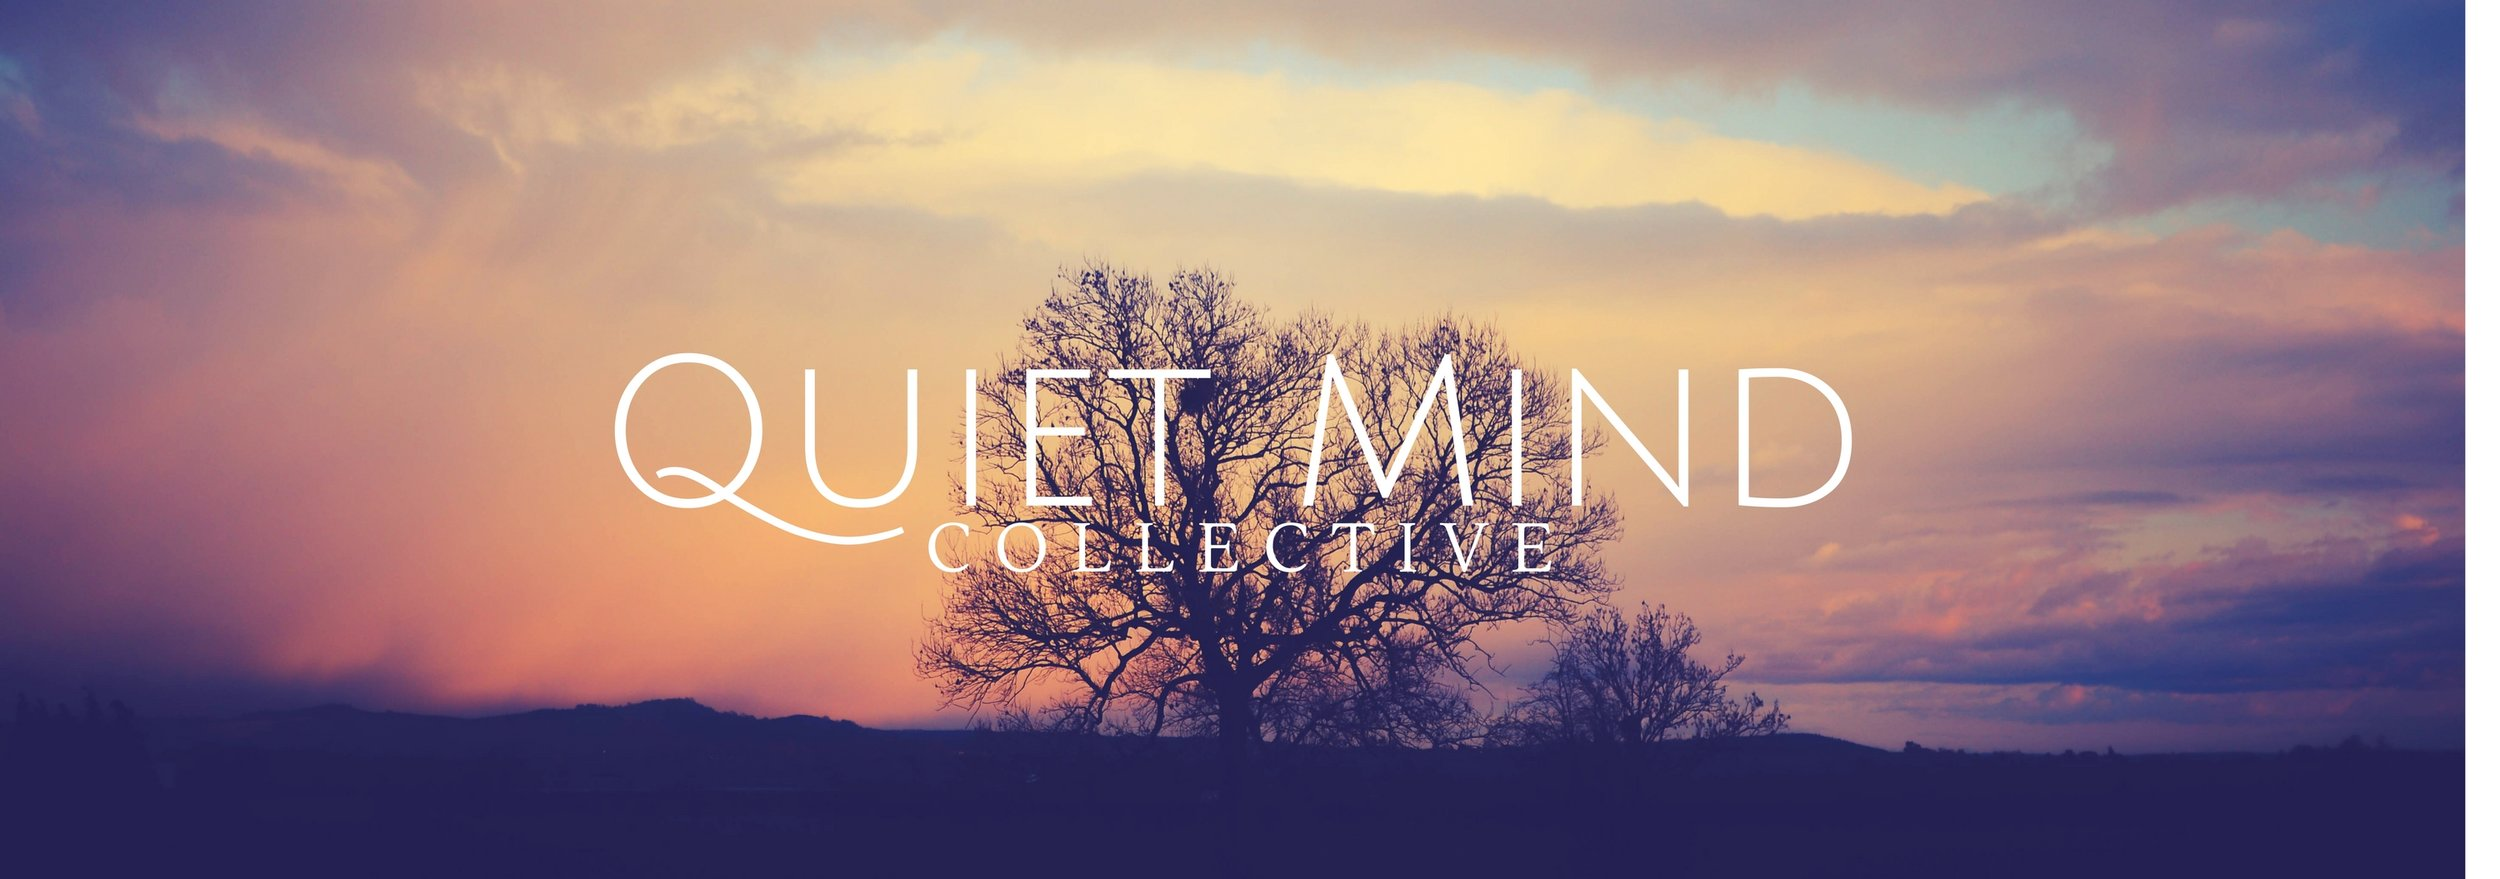 Quiet Mind Collective Facebook